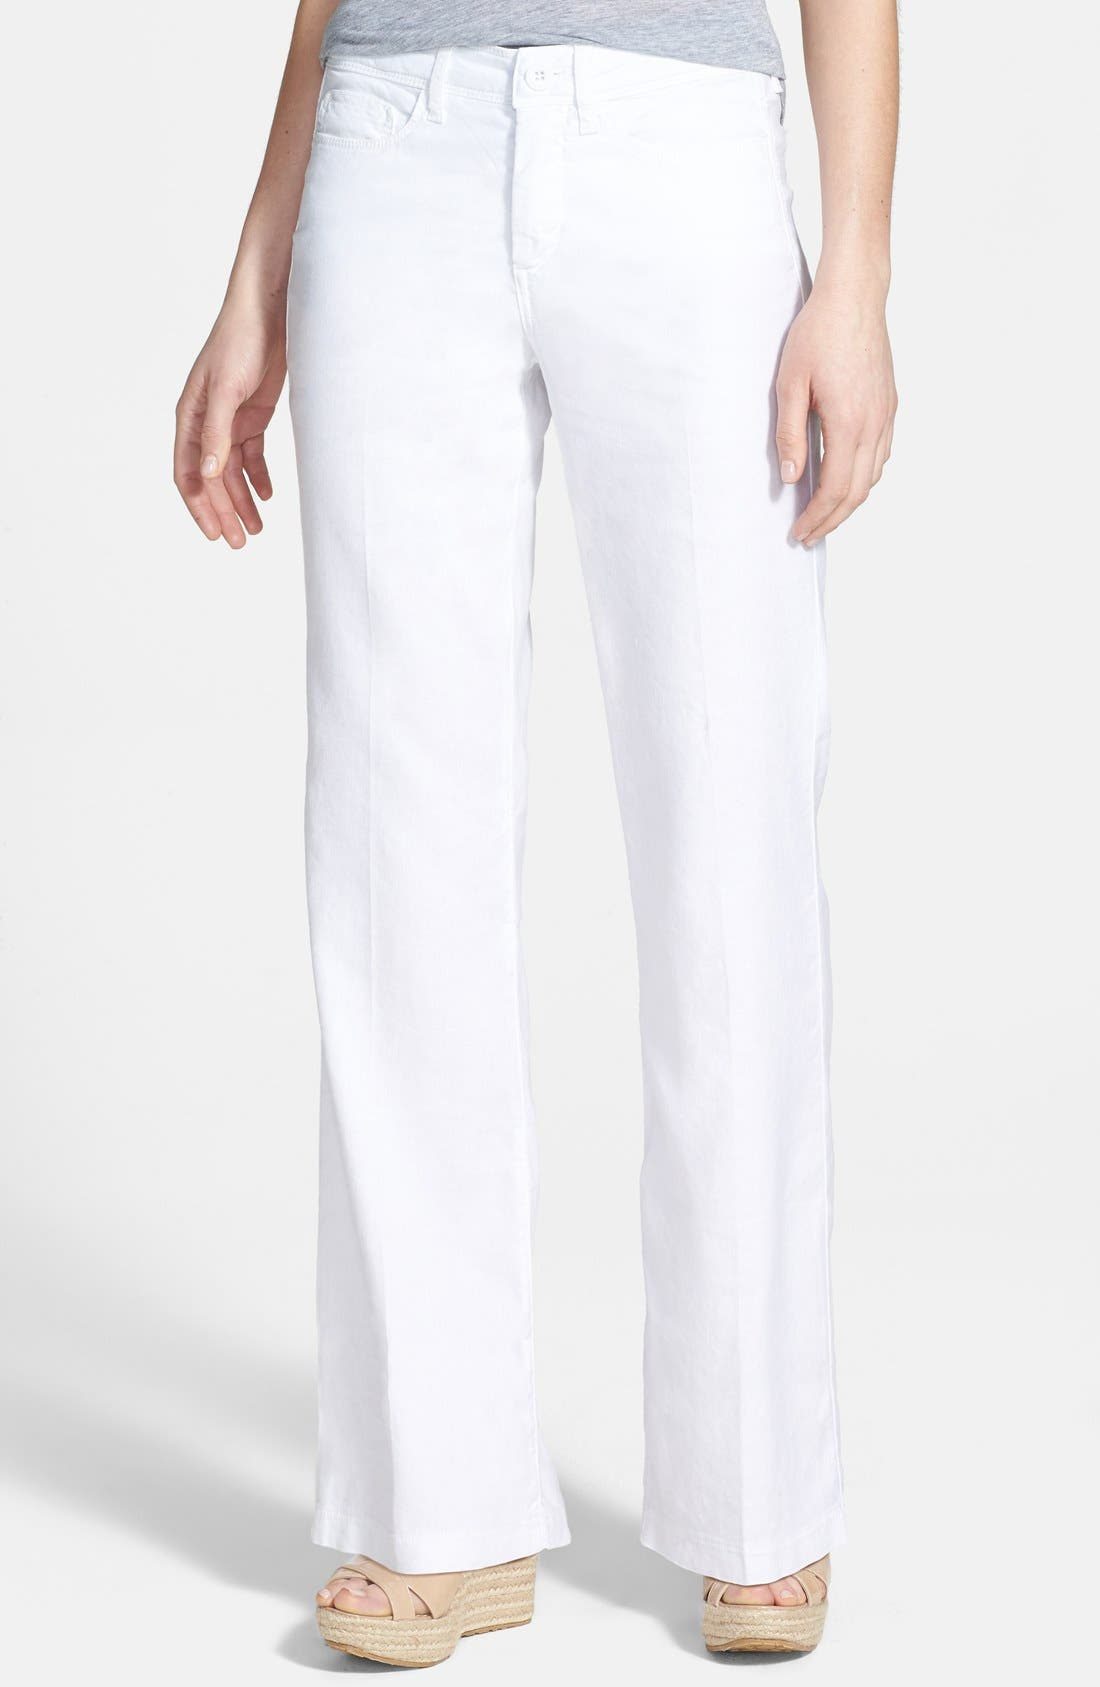 White Linen Pants Womens qf0I3W1W